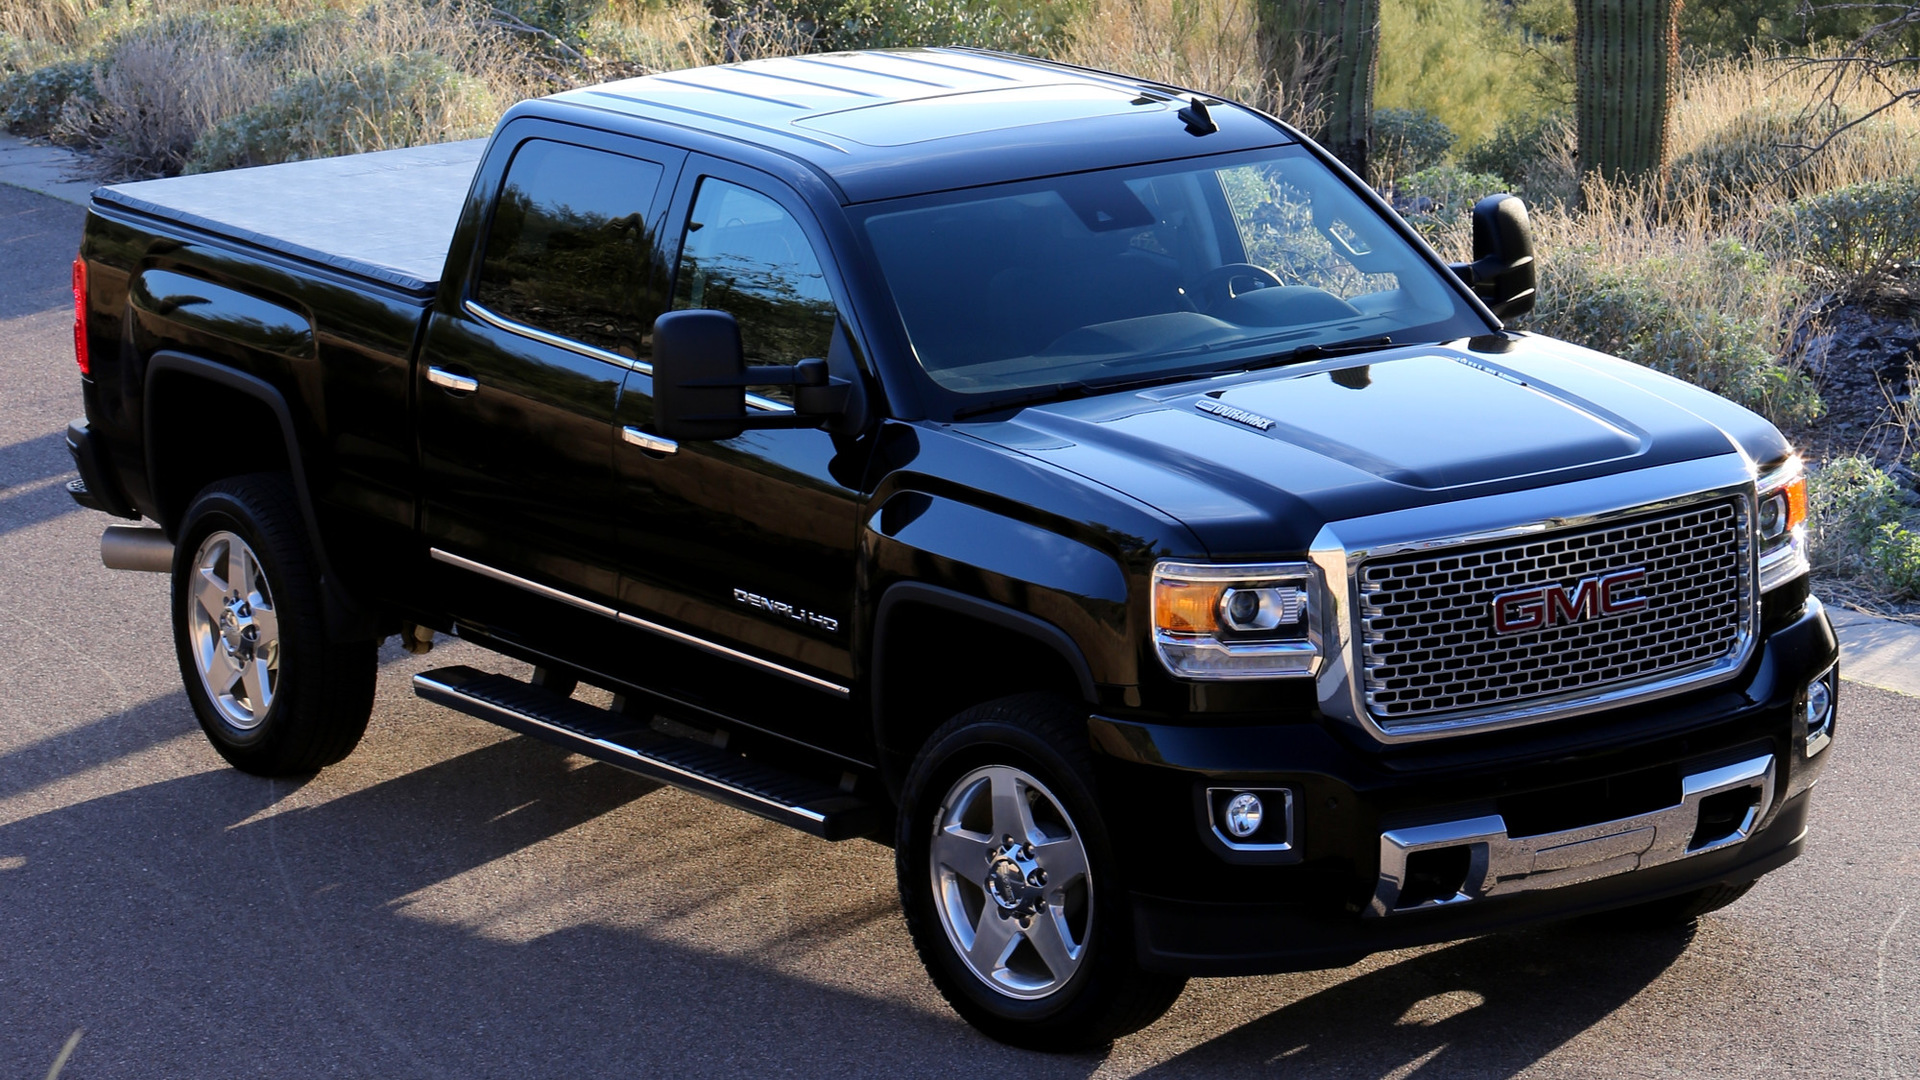 gmc sierra denali 2500 hd crew cab 2015 wallpapers and hd images car pixel. Black Bedroom Furniture Sets. Home Design Ideas